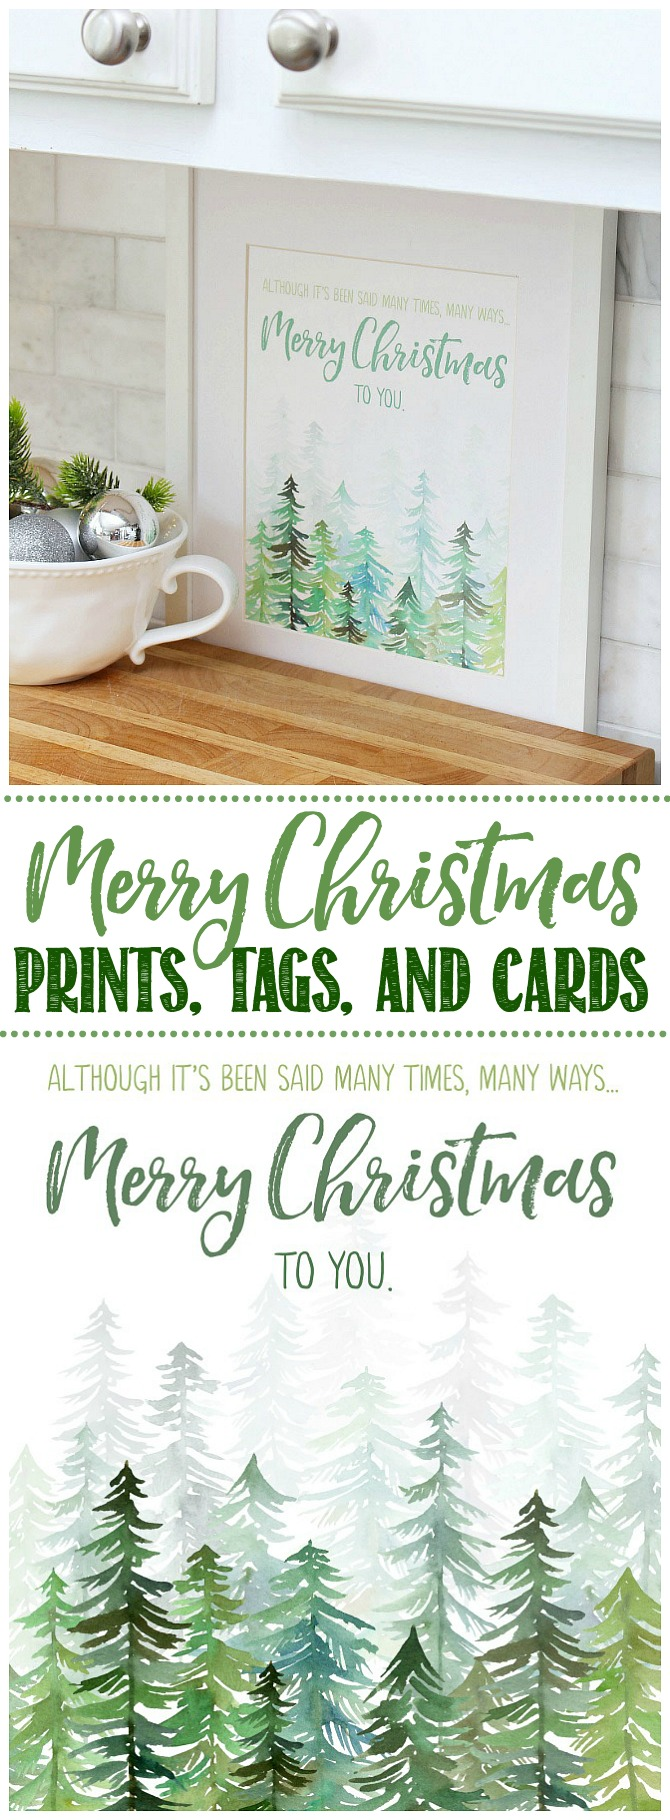 Merry Christmas To You free printable displayed in a frame.